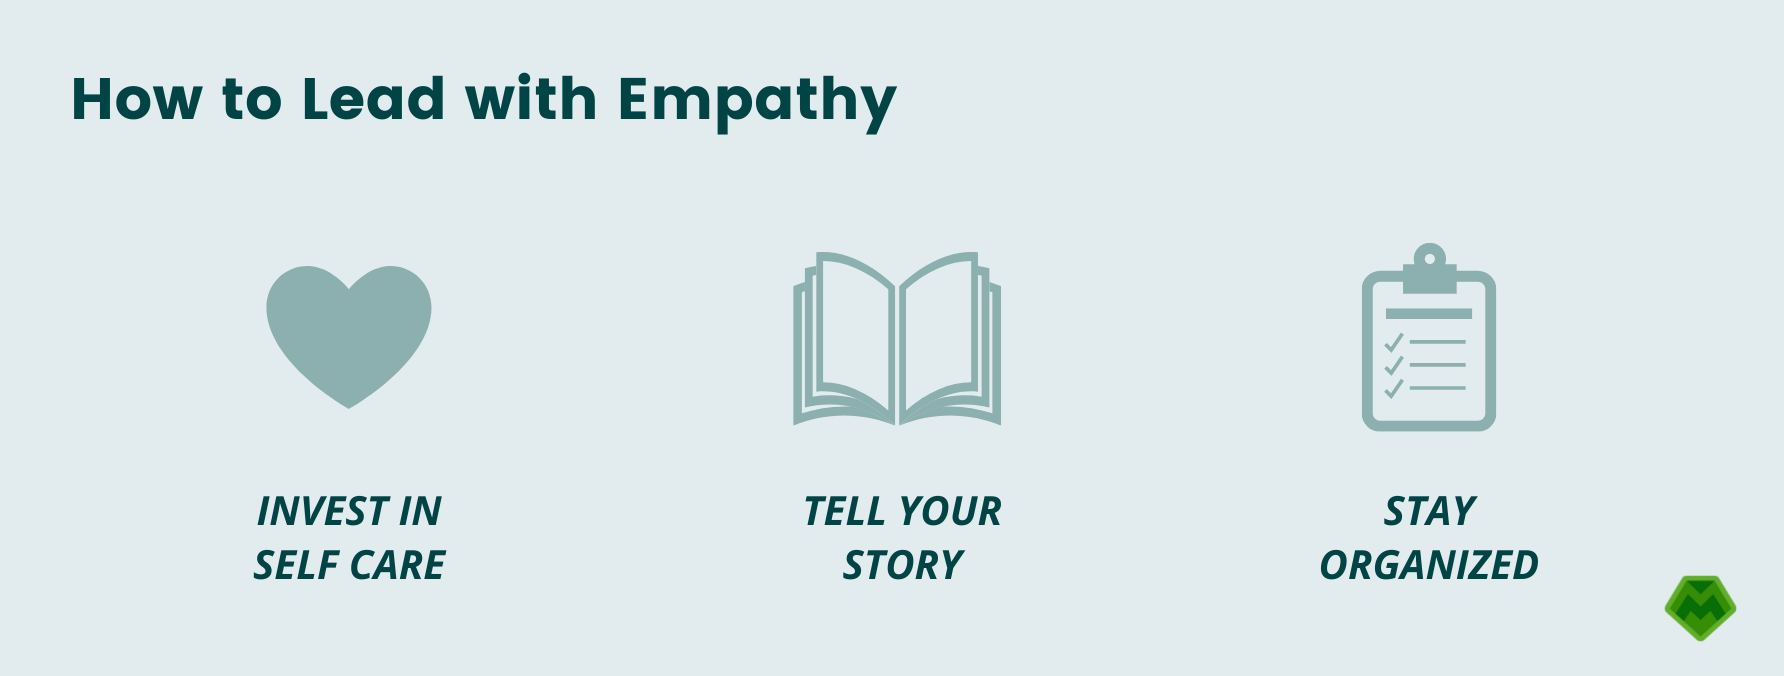 How to lead with empathy in restaurants: invest in self care, tell your story, stay organized